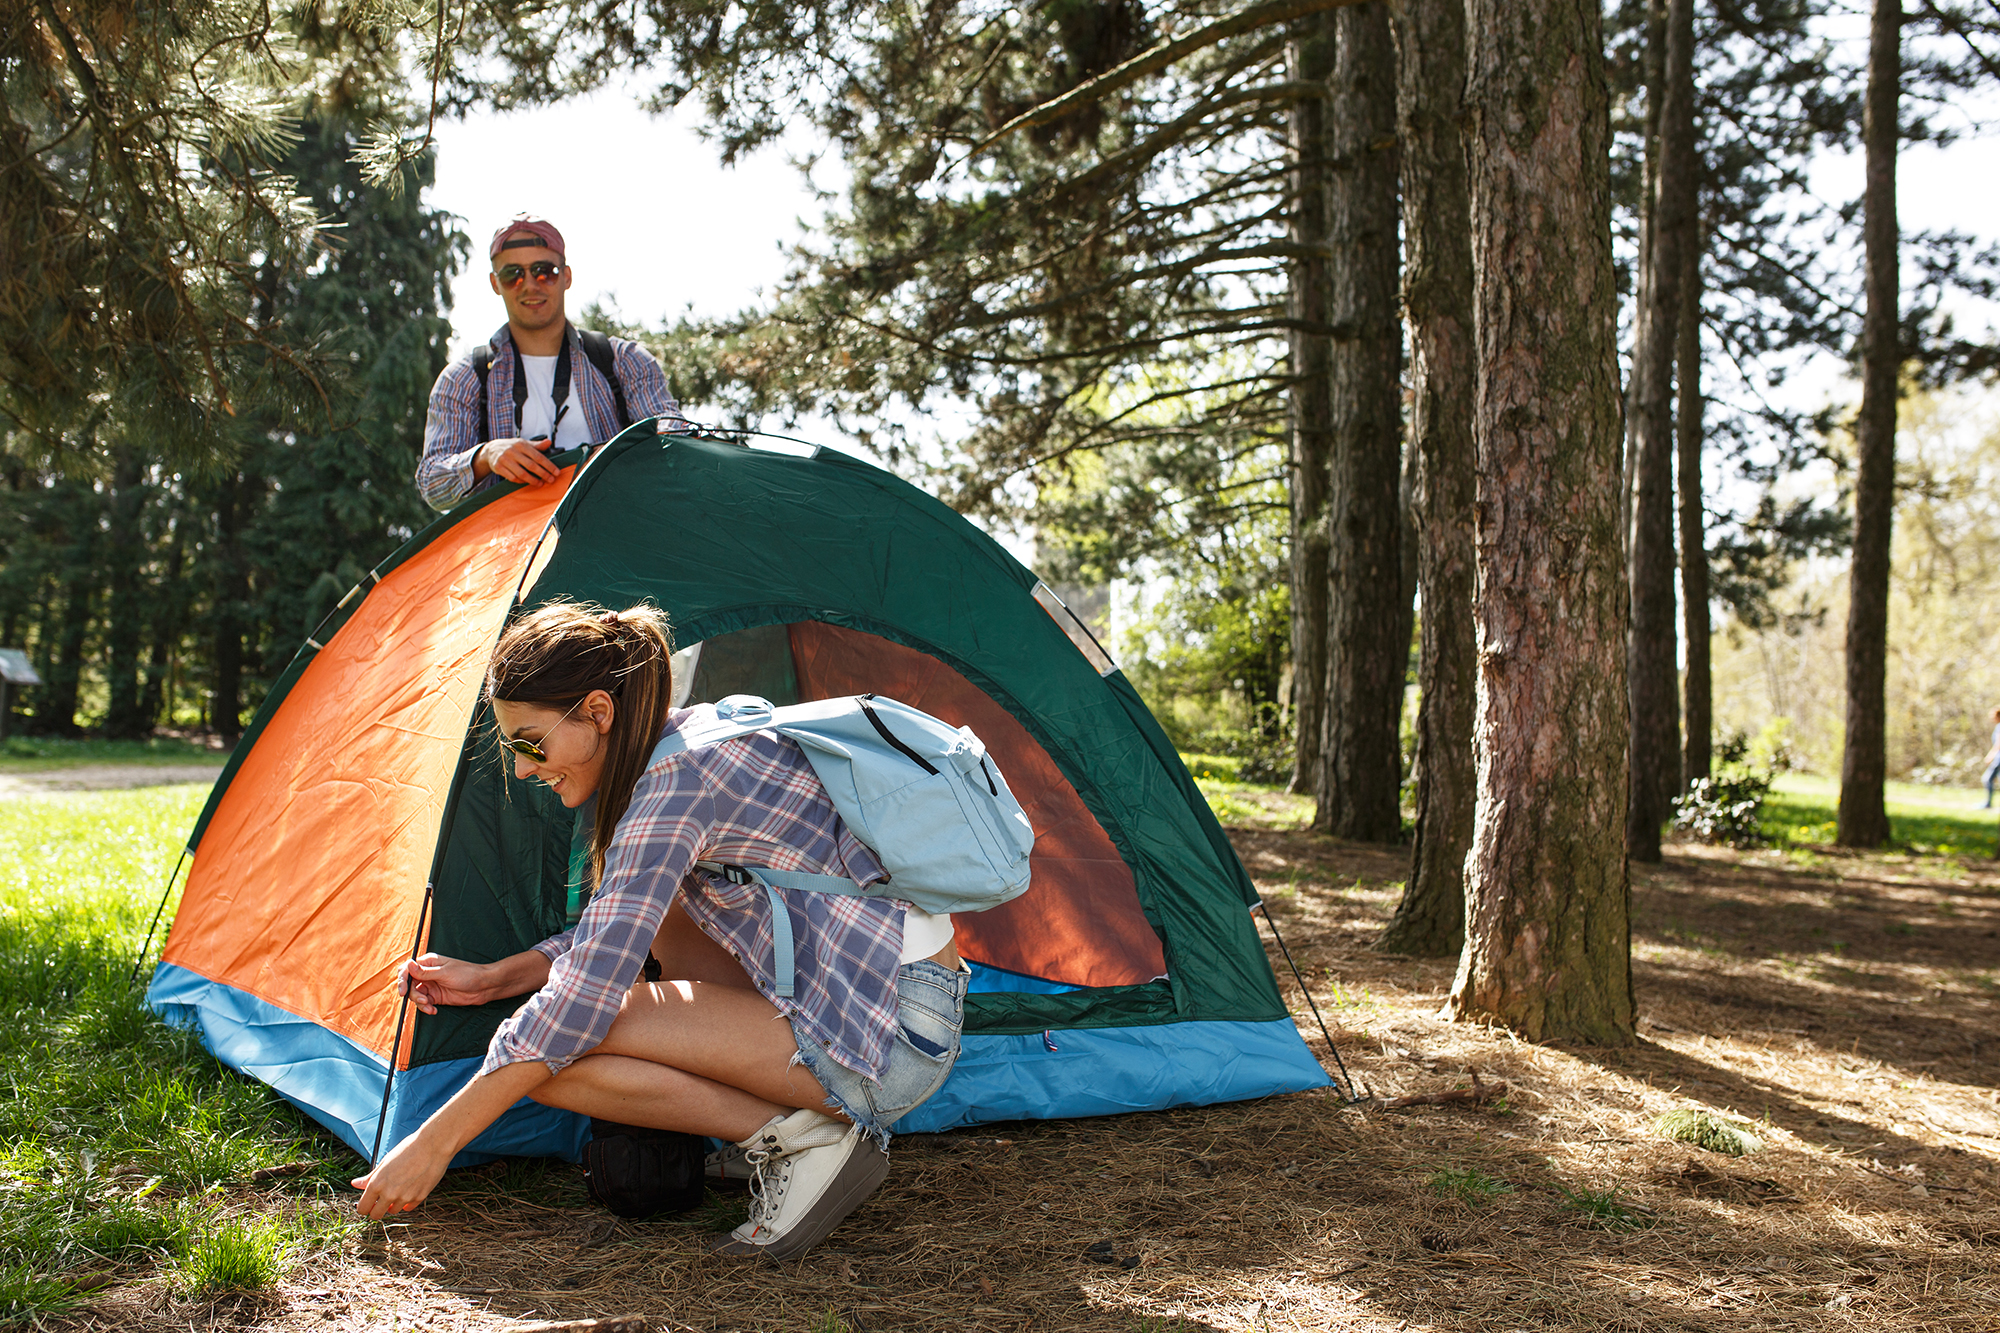 A man and woman setting up a tent in a grassy clearing